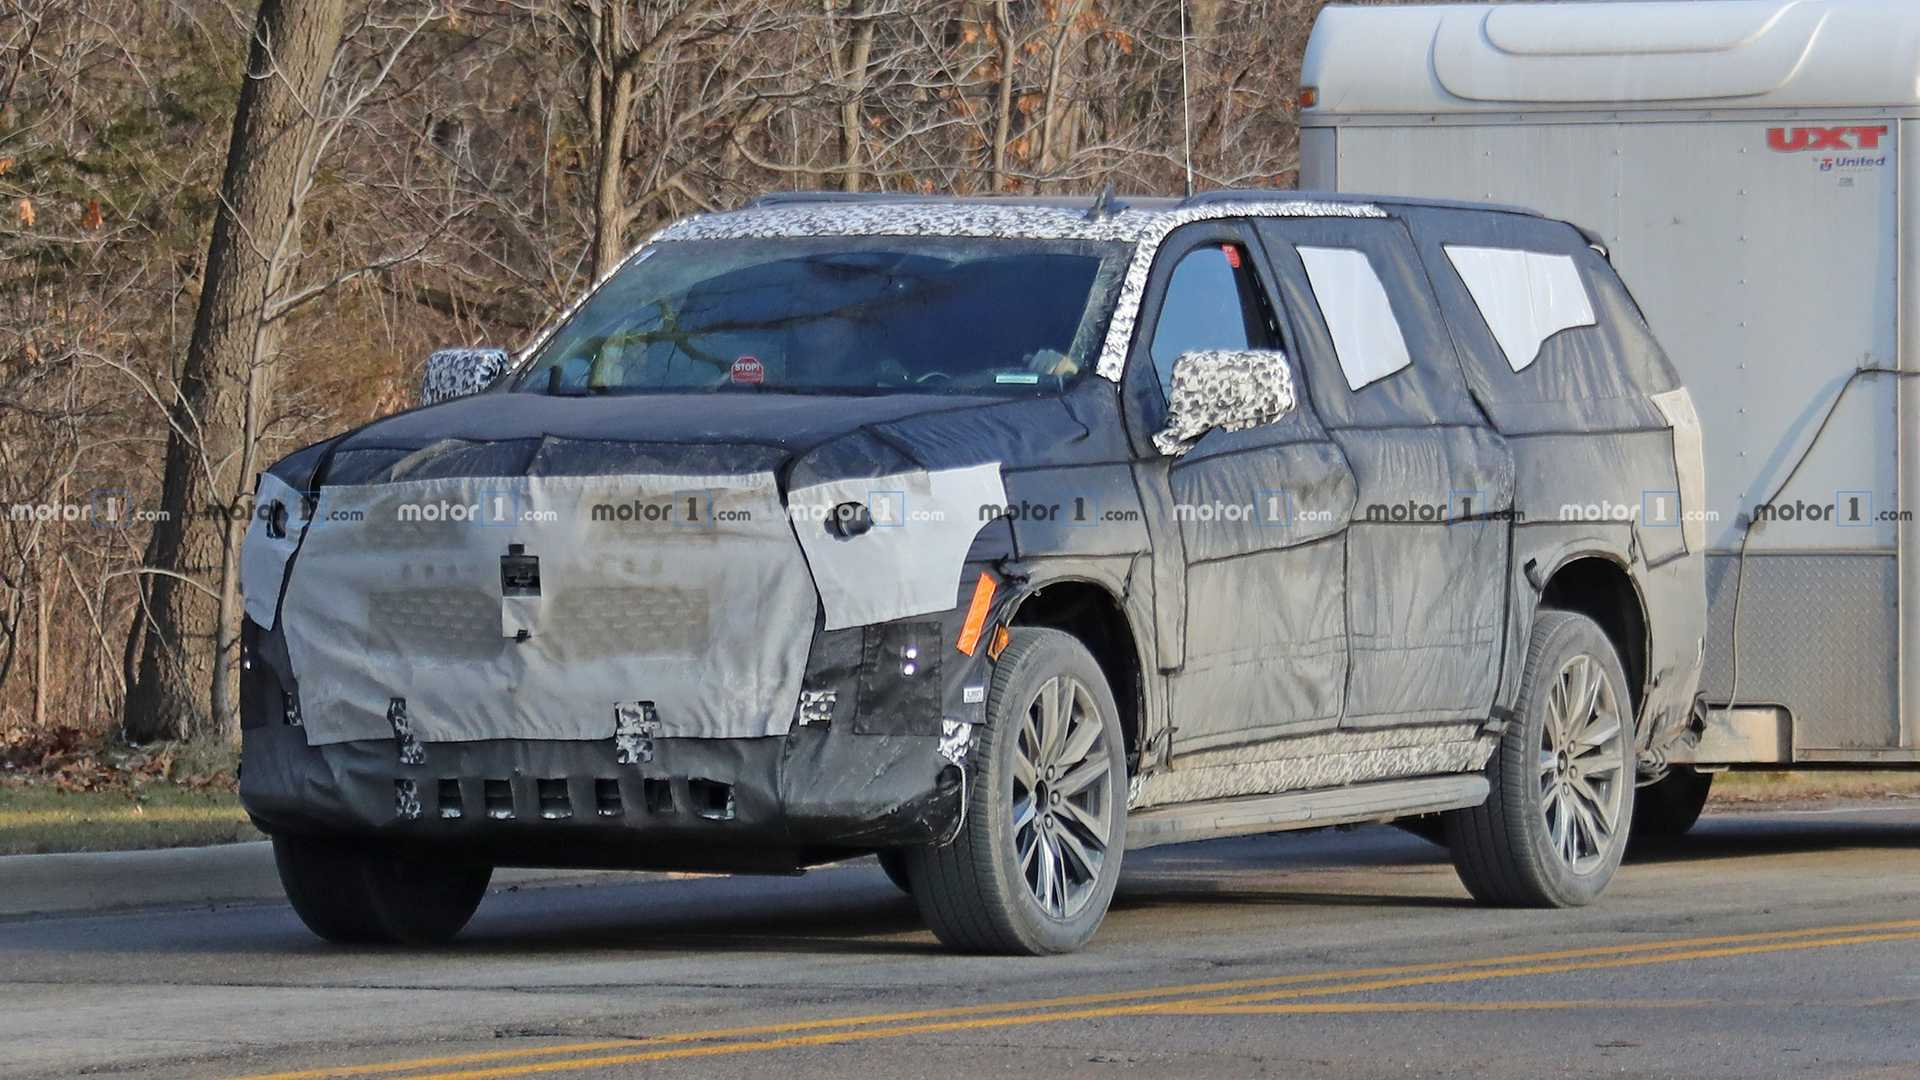 51 Gallery of 2020 Cadillac Escalade Body Style Change Prices by 2020 Cadillac Escalade Body Style Change